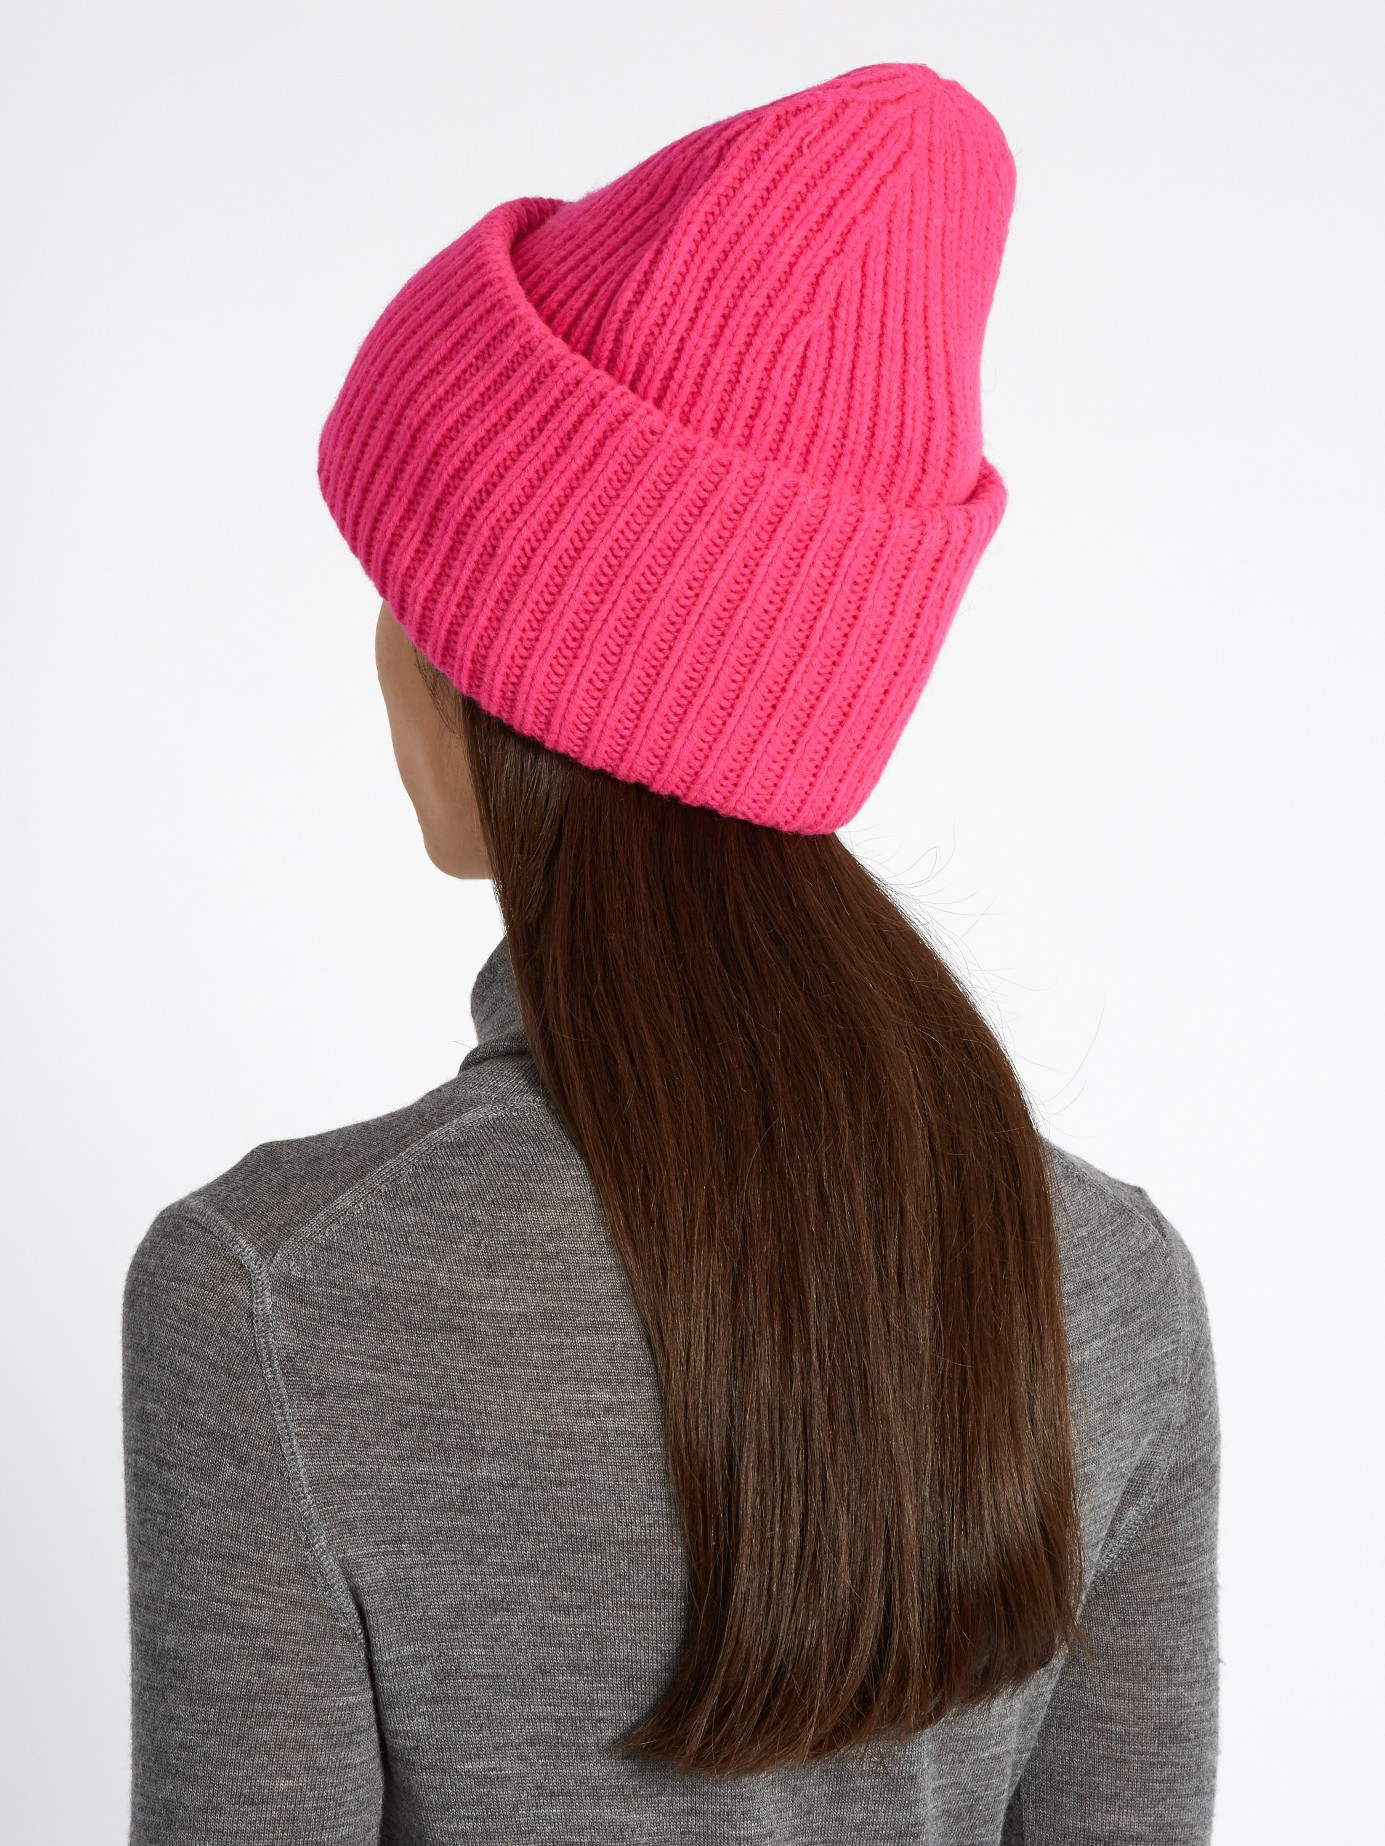 Lyst Acne Studios Pansy Ribbed Knit Wool Beanie Hat In Pink